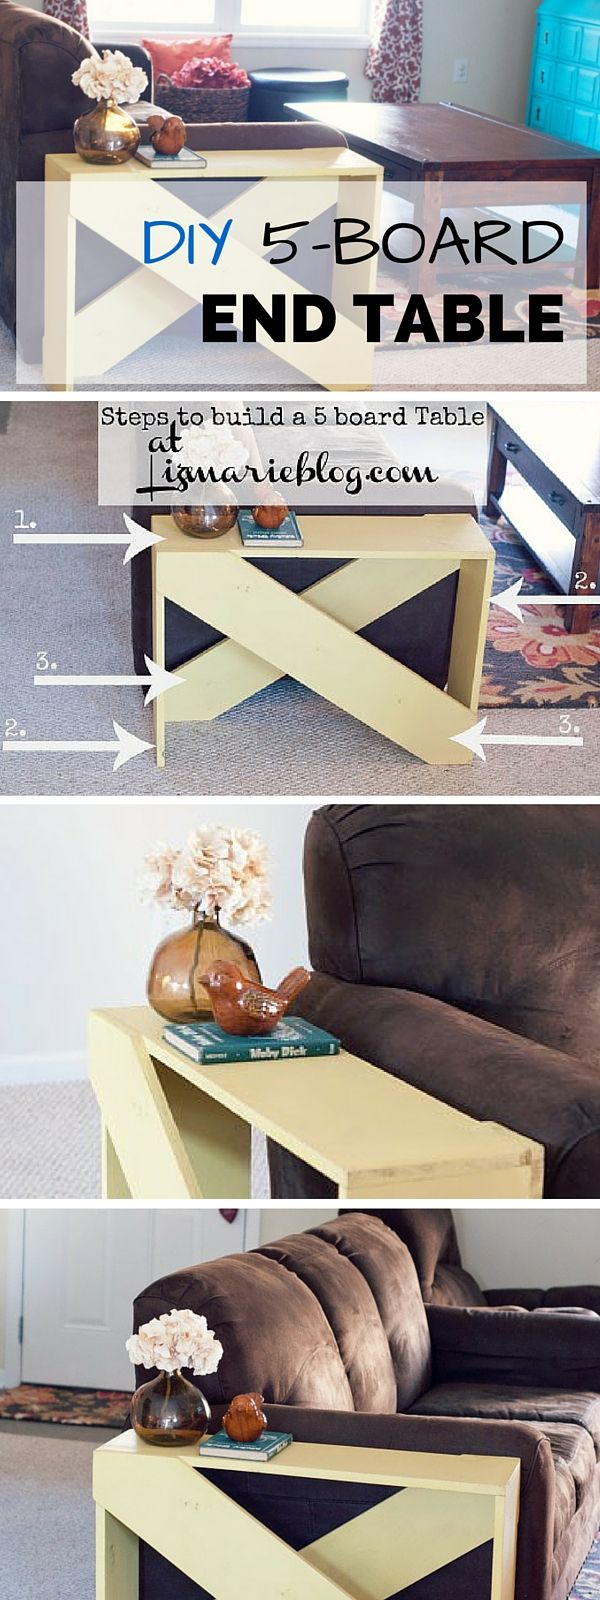 Check out the tutorial on building a DIY 5-Board end table @istandarddesign